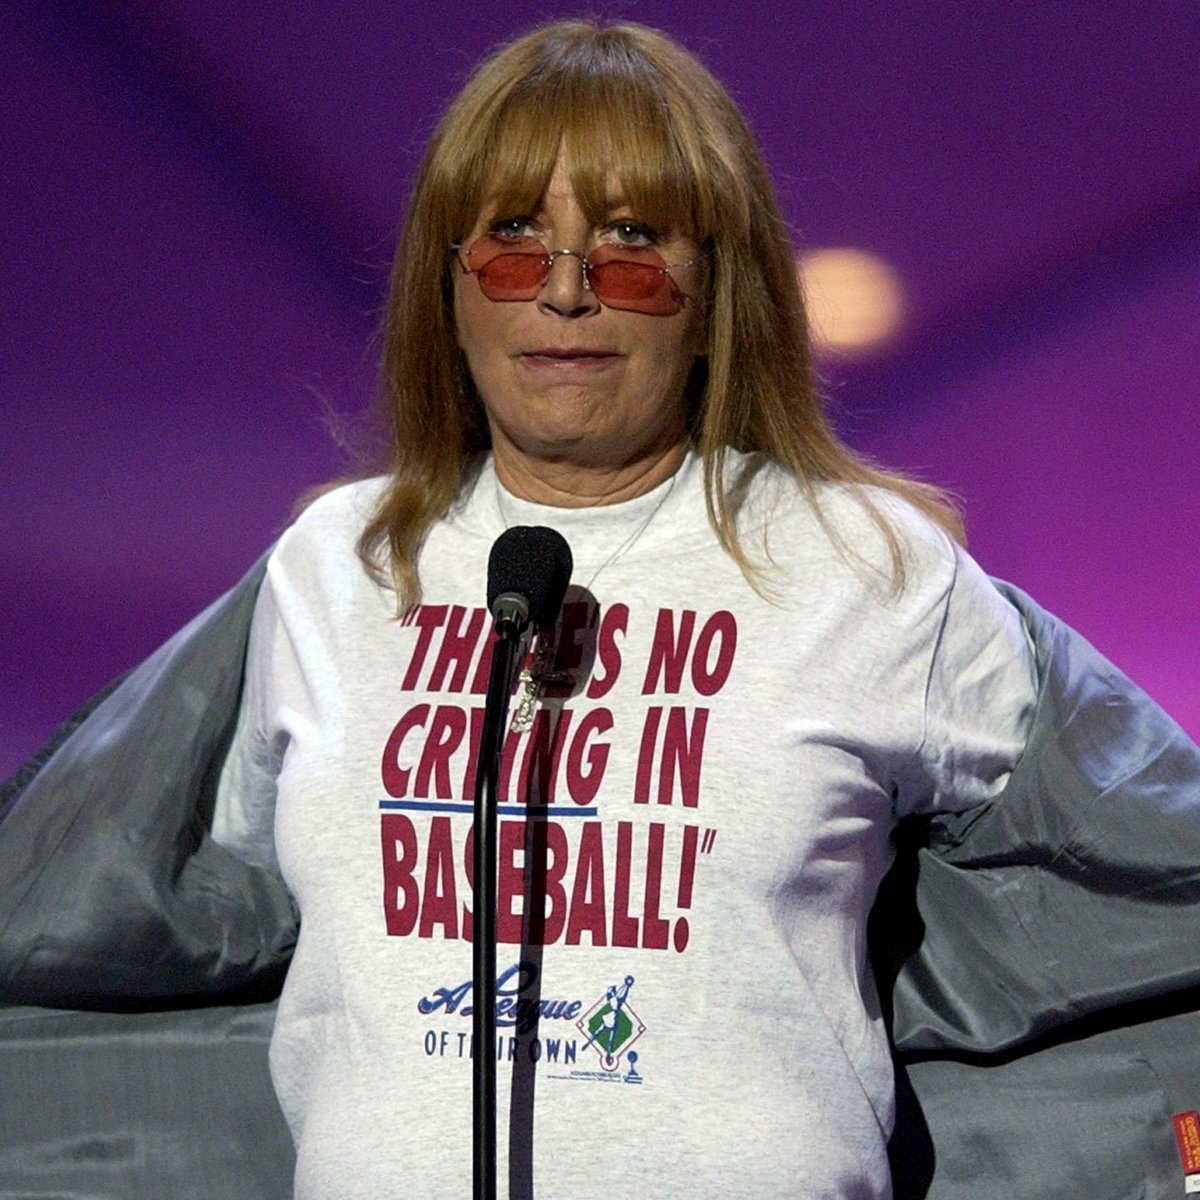 We join the baseball community in mourning the passing of Penny Marshall, director of 'A League of Their Own.'